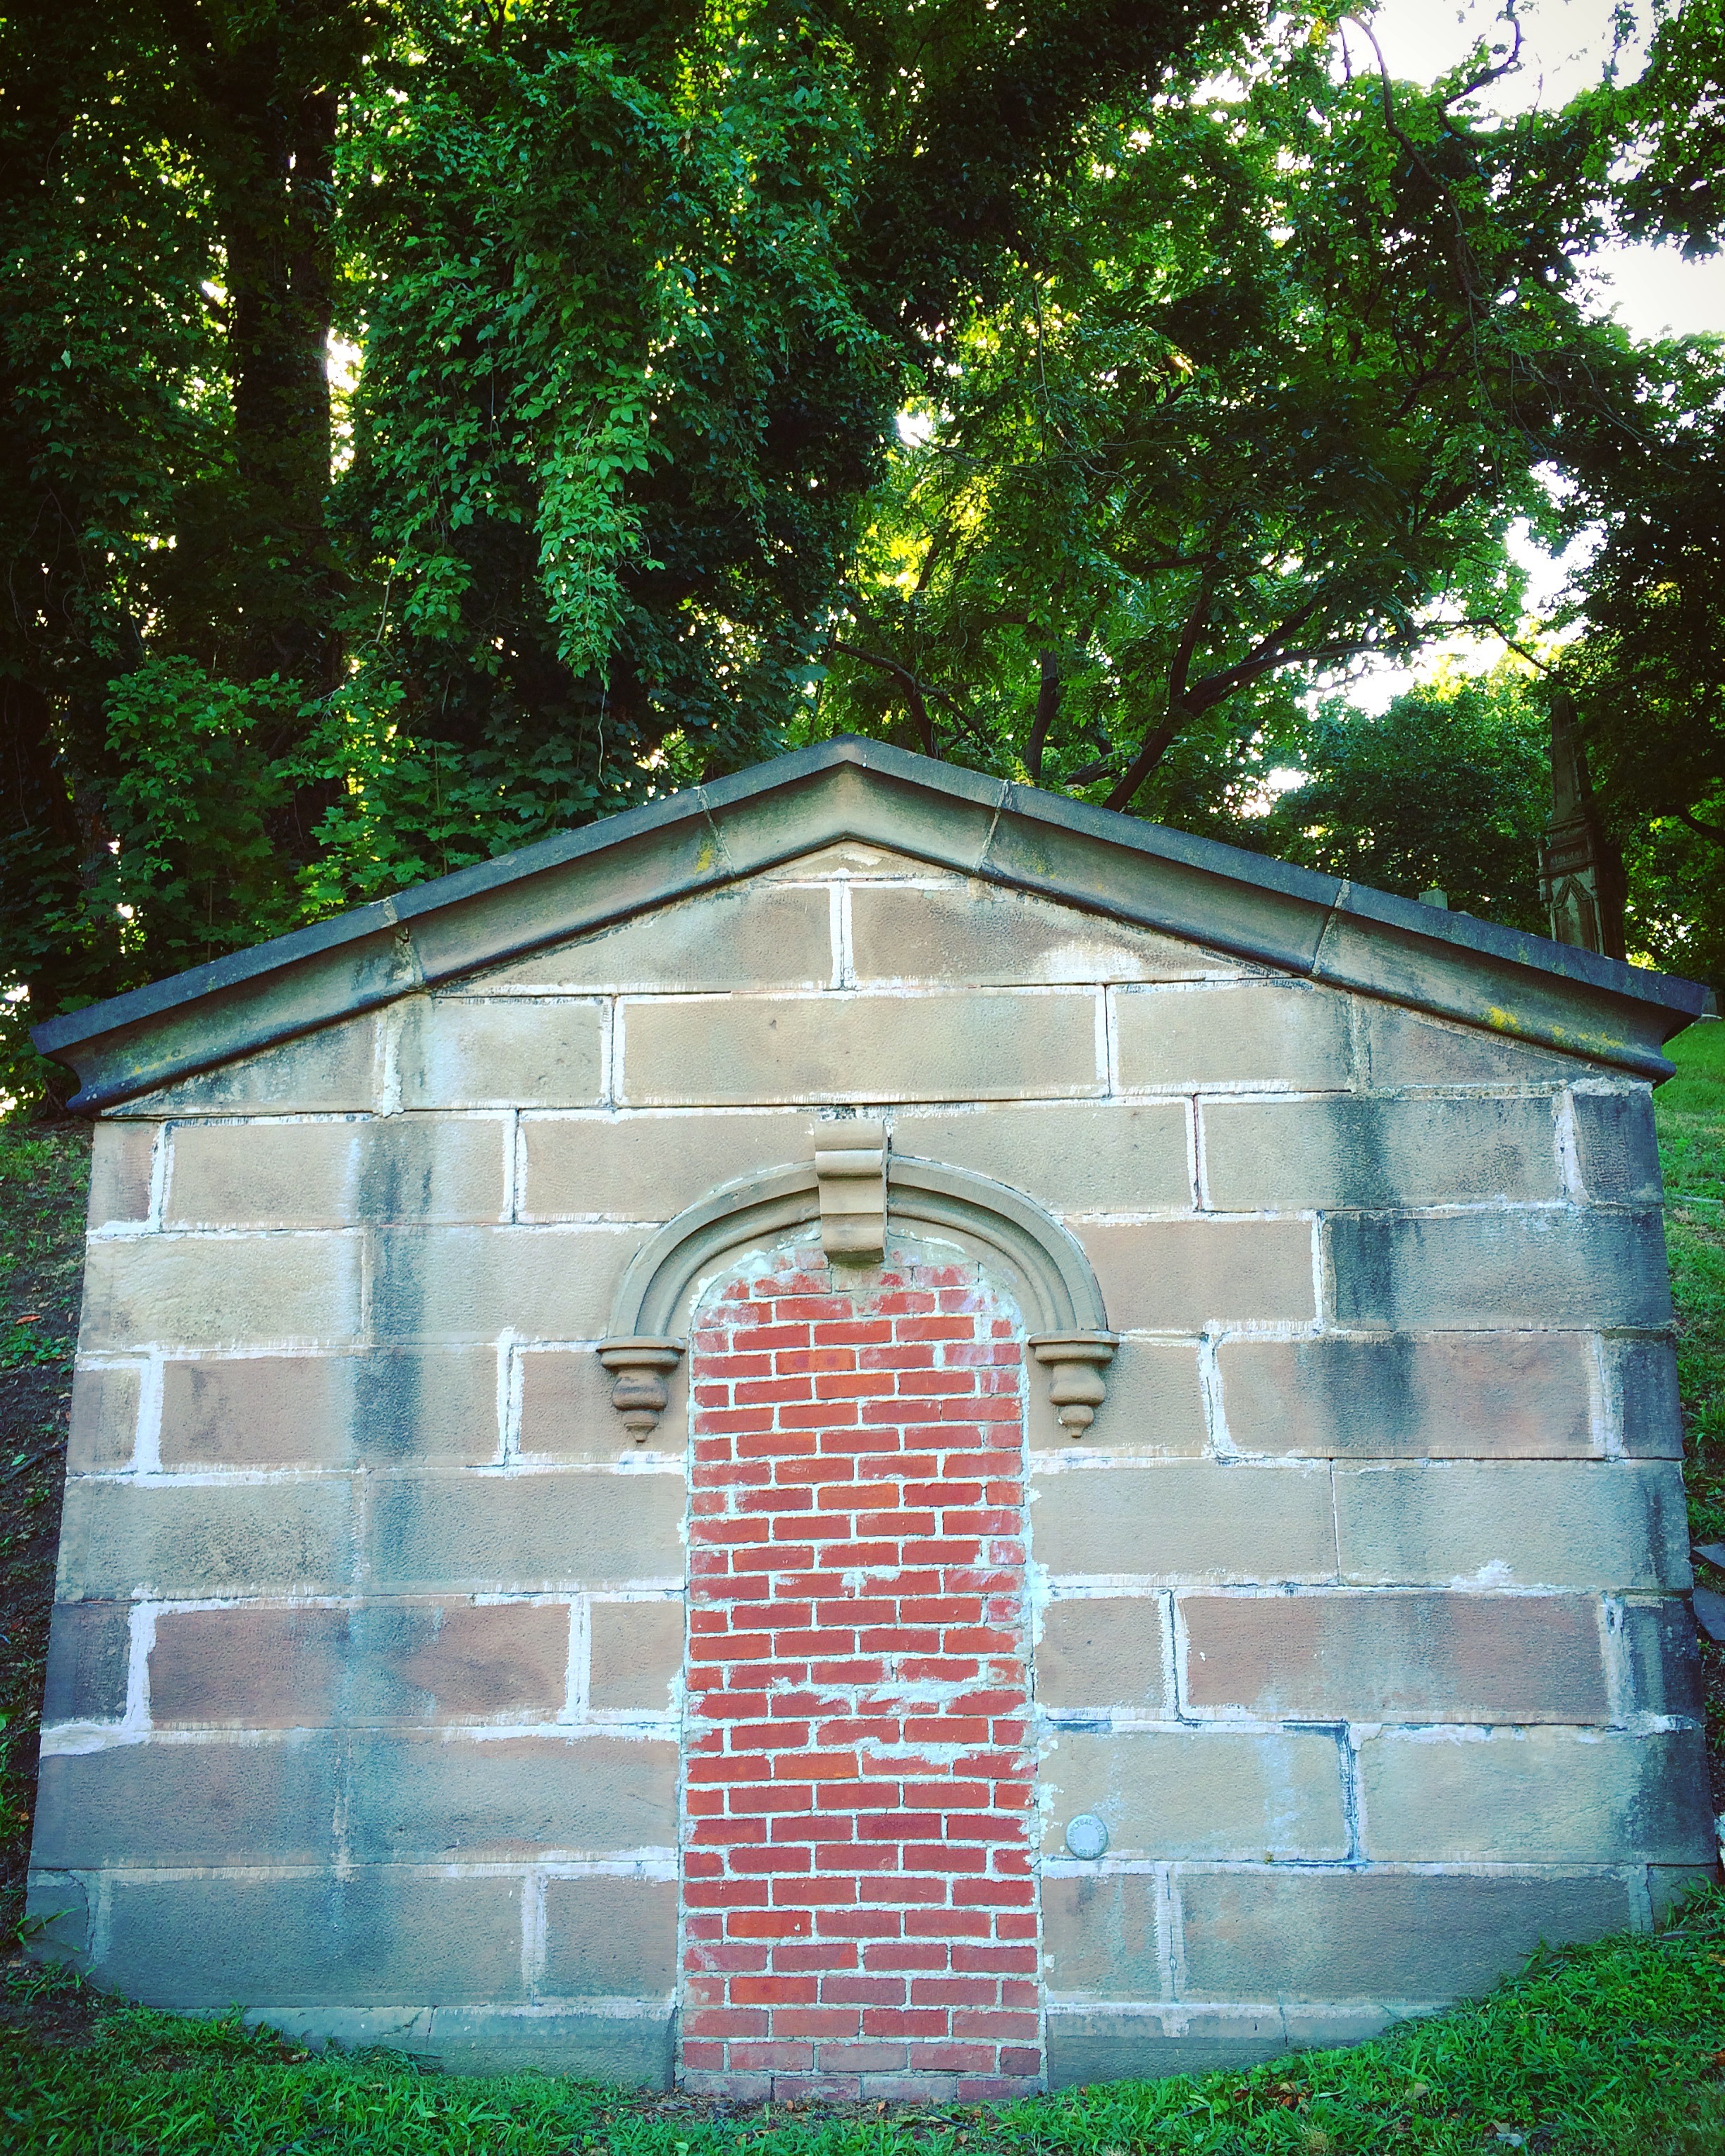 a stone mausoleum with a peaked roof stands before a wall of green trees and overgrowth. its door, beneath a carved arch, is bricked over like some creepy Beetlejuice business